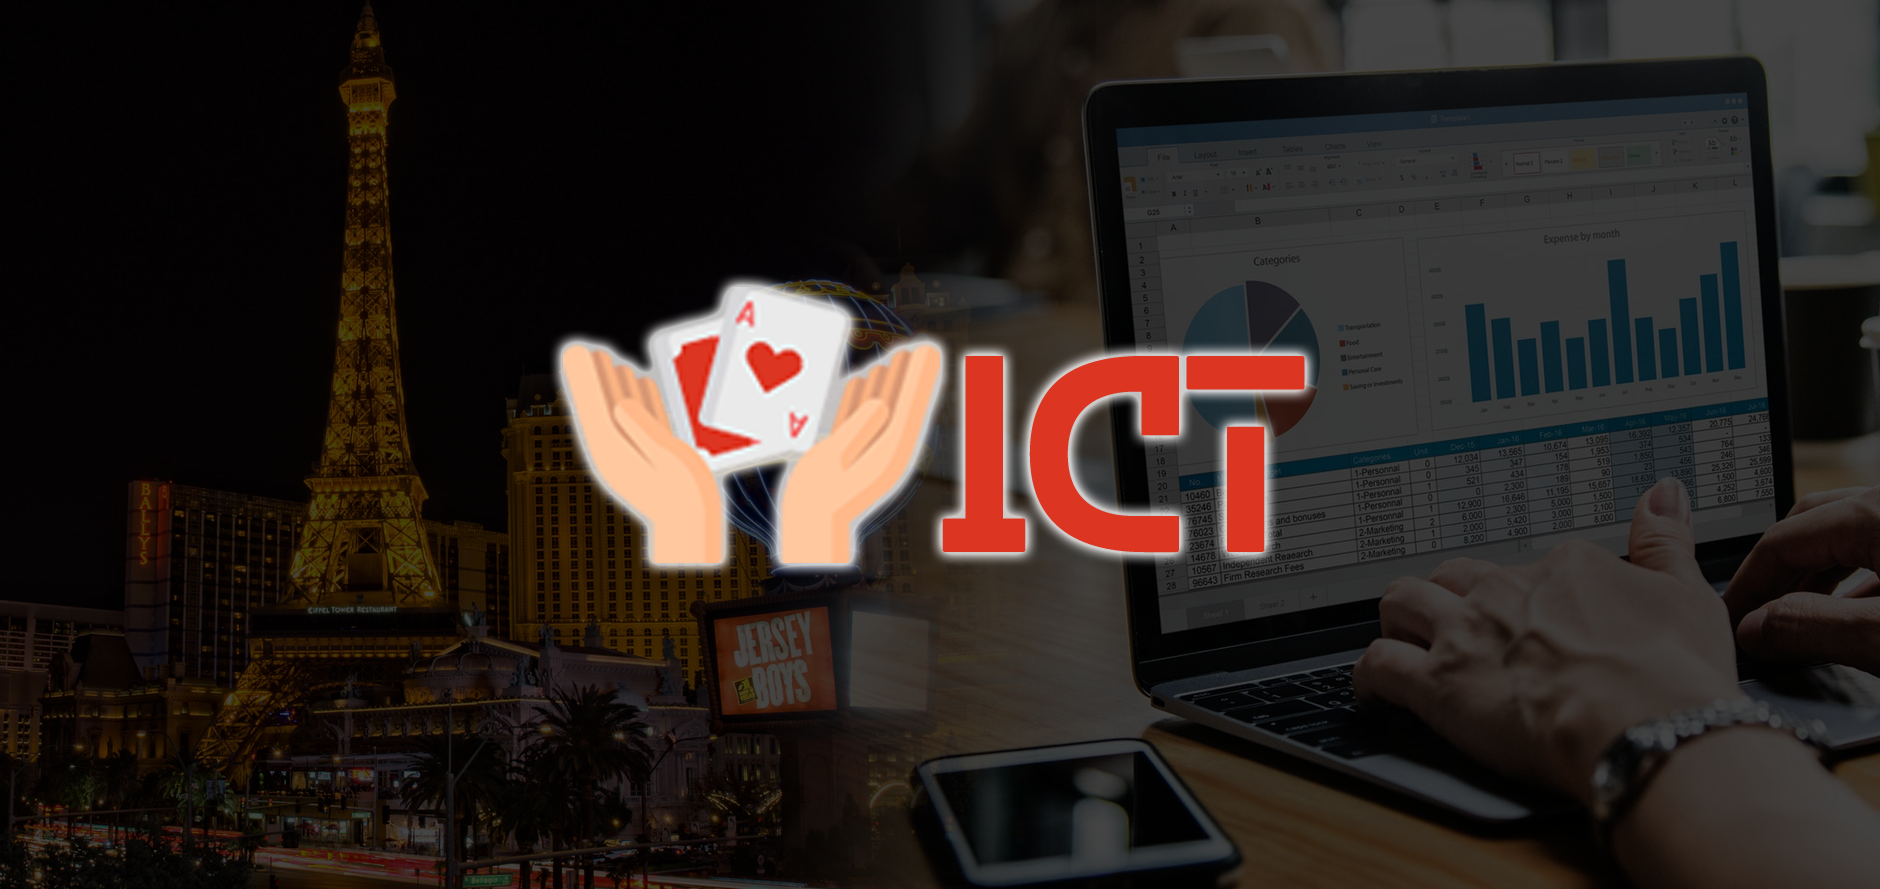 AboutUs ICTlogo with casino and accounting background - About